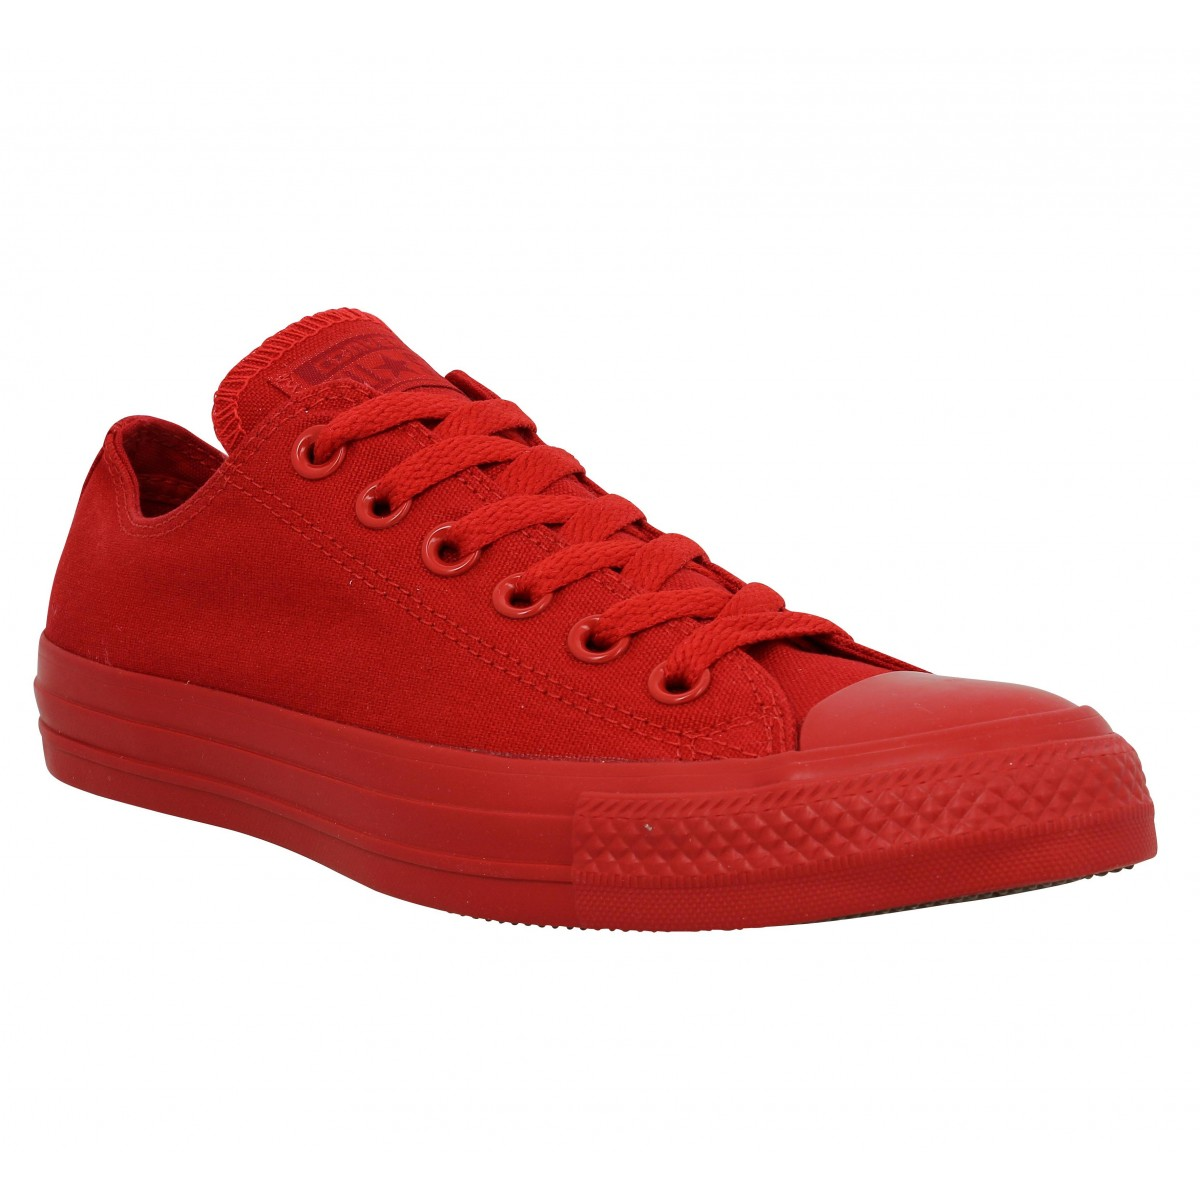 CONVERSE Chuck Taylor All Star toile Homme Mono Rouge